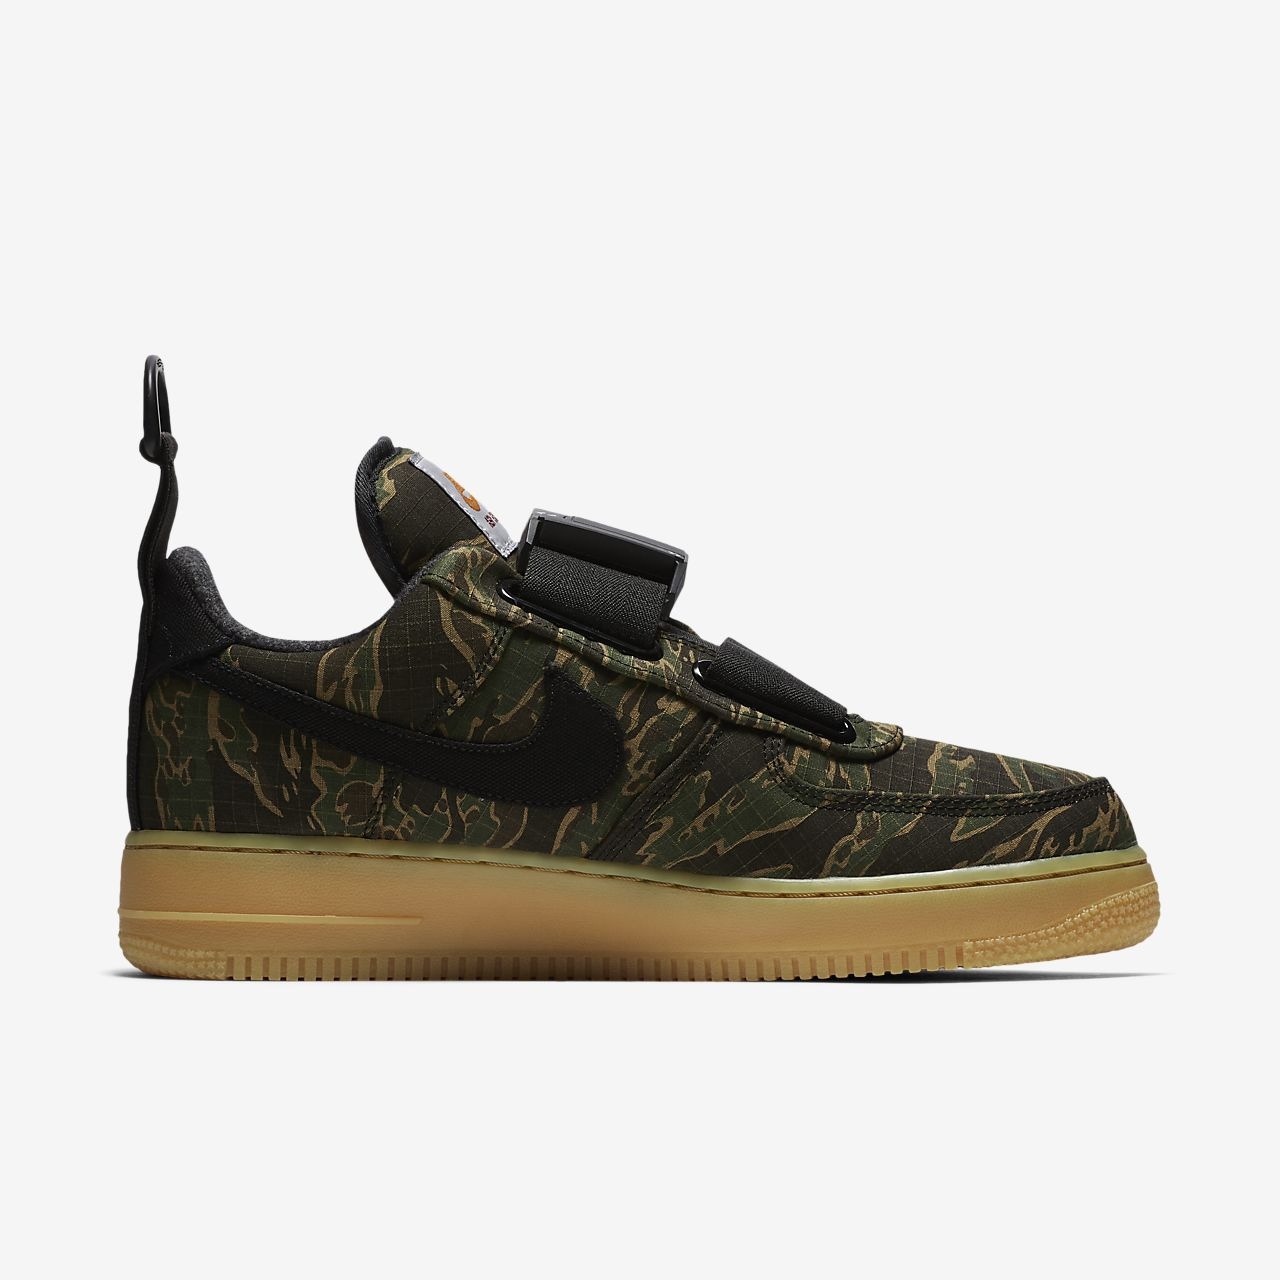 e1c54271202e Nike Air Force 1 Utility Low Premium WIP Men s Shoe. Nike.com